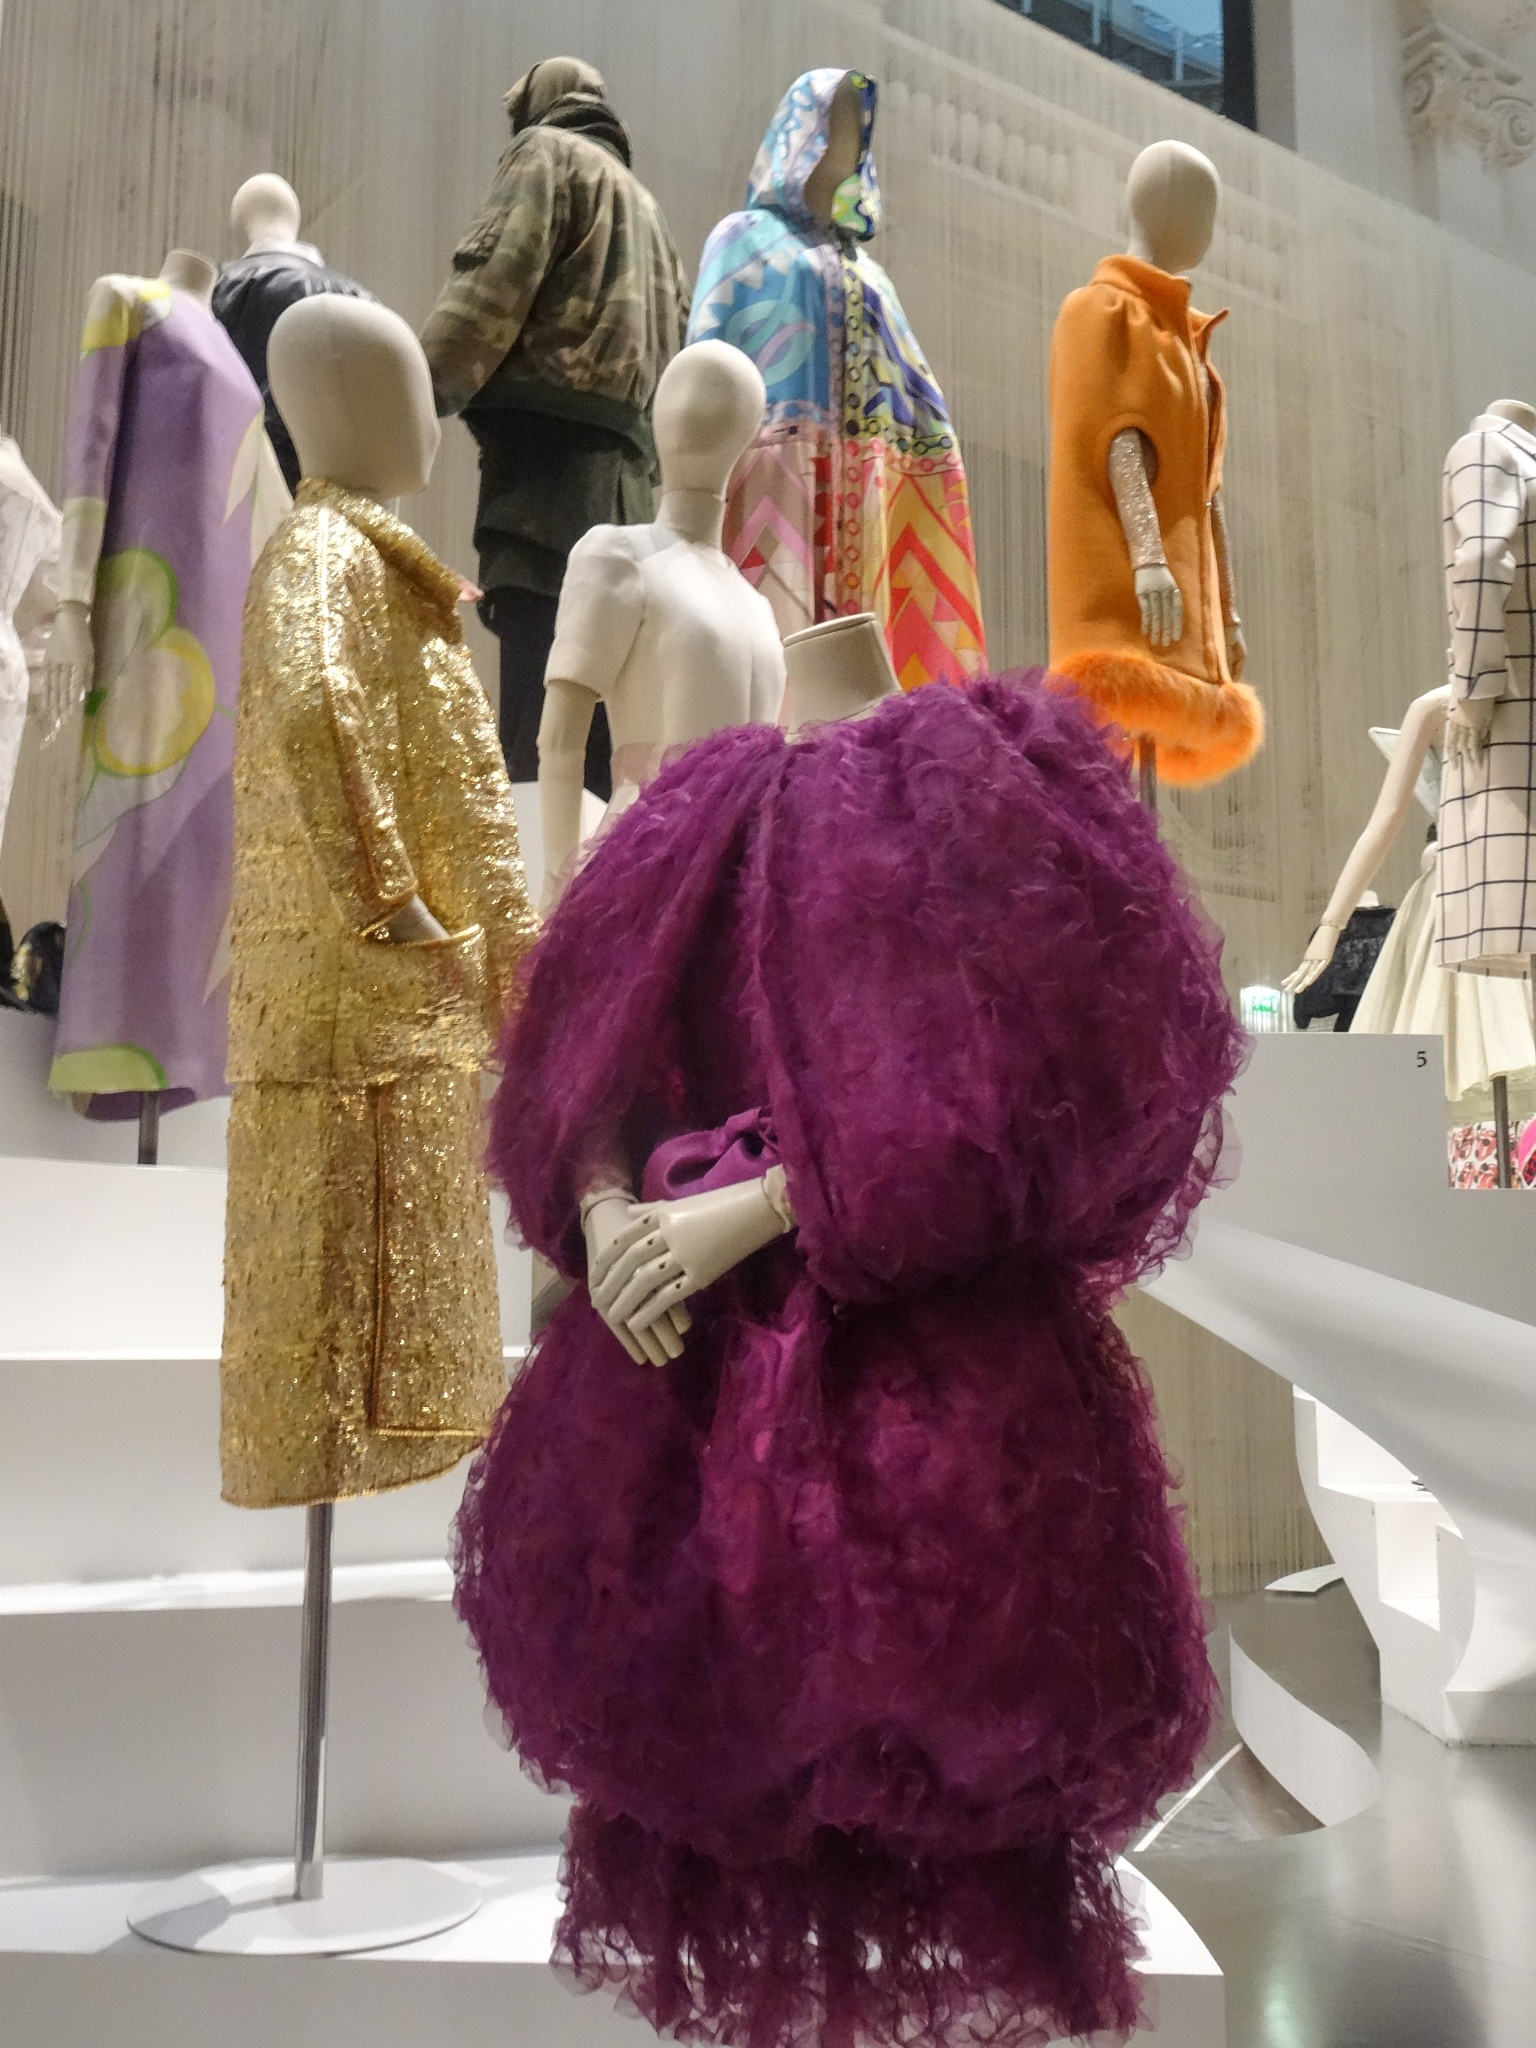 300 Years of Fashion 2 by Carolyn Chase